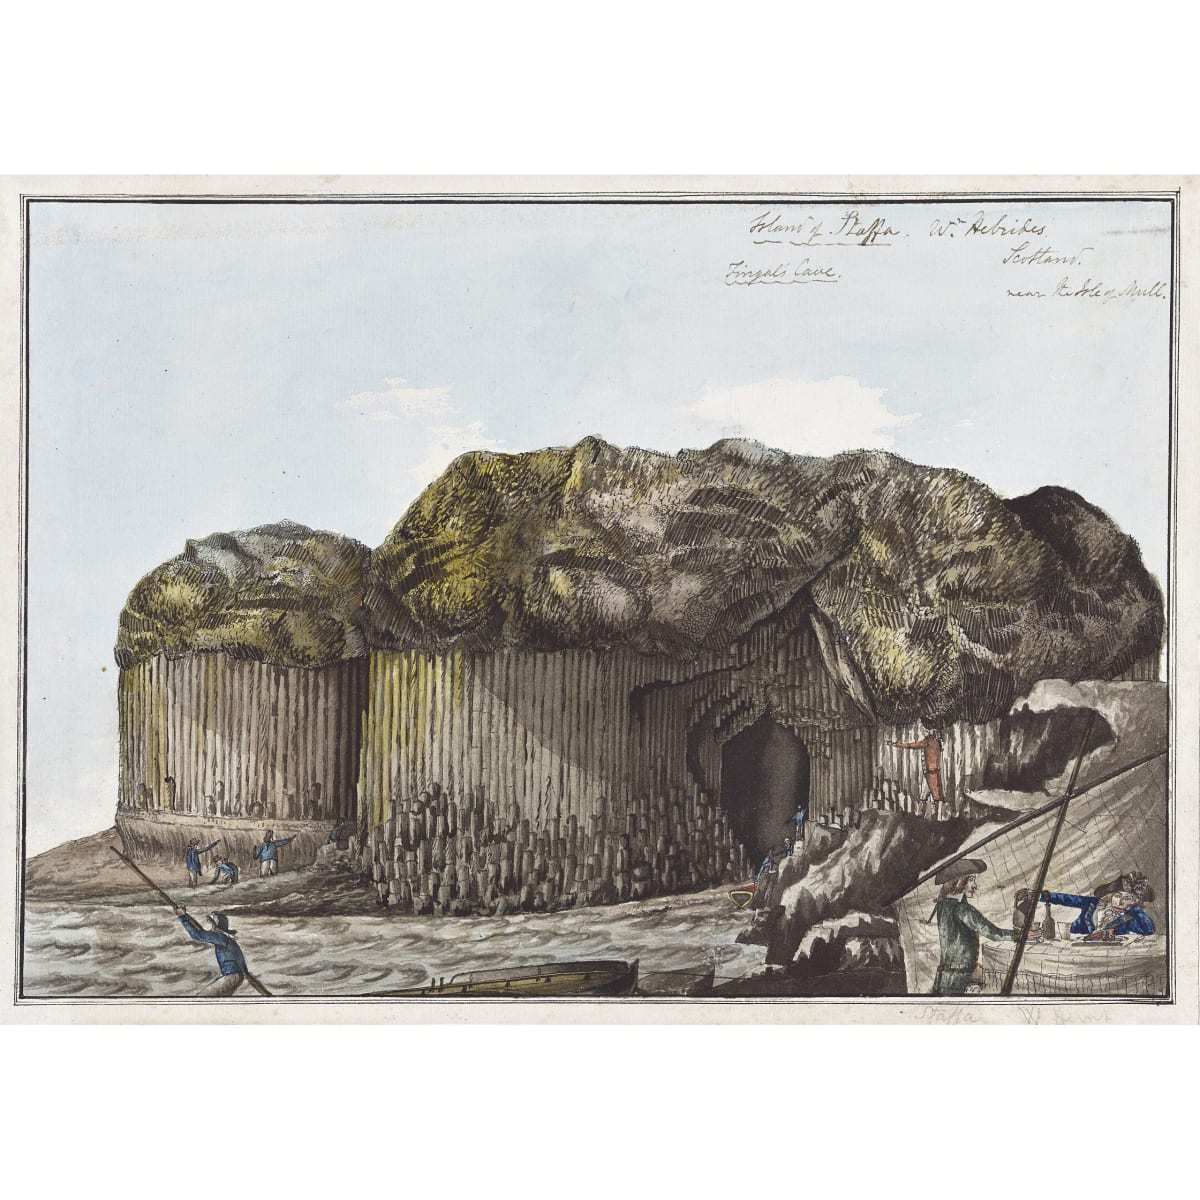 William Hunt Fingal's cave, on the Isle of Staffa, Scotland signed and titled in pencil to margin, inscribed upper right and verso watercolour, pen and ink 16 x 11 3/4 inches